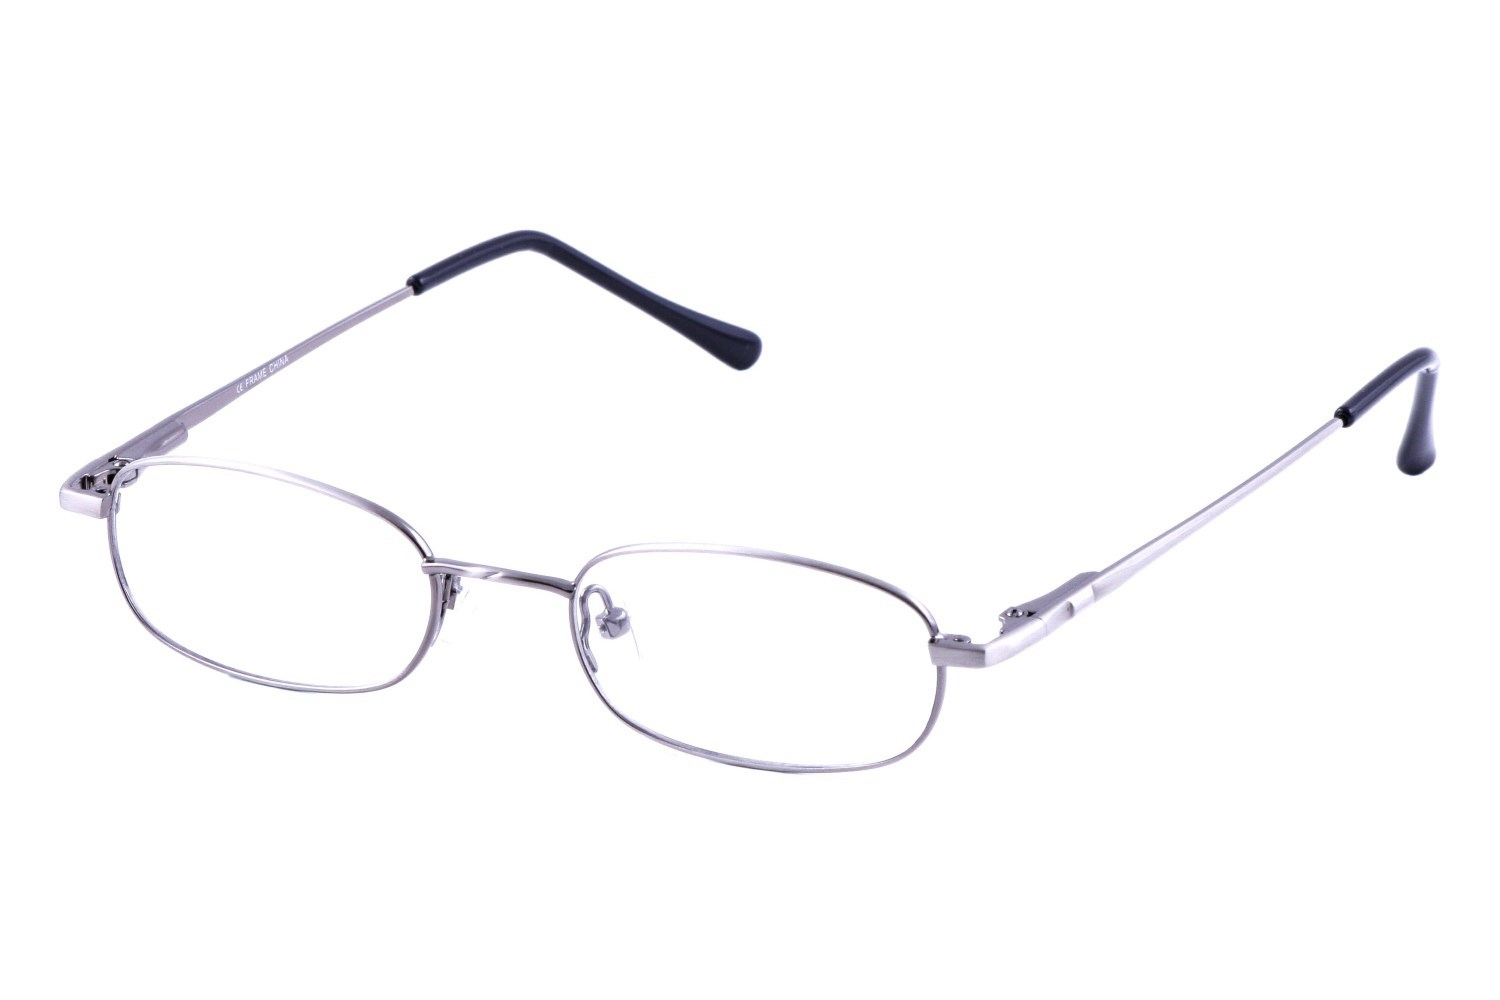 Artistic Values A 422 Prescription Eyeglasses Frames